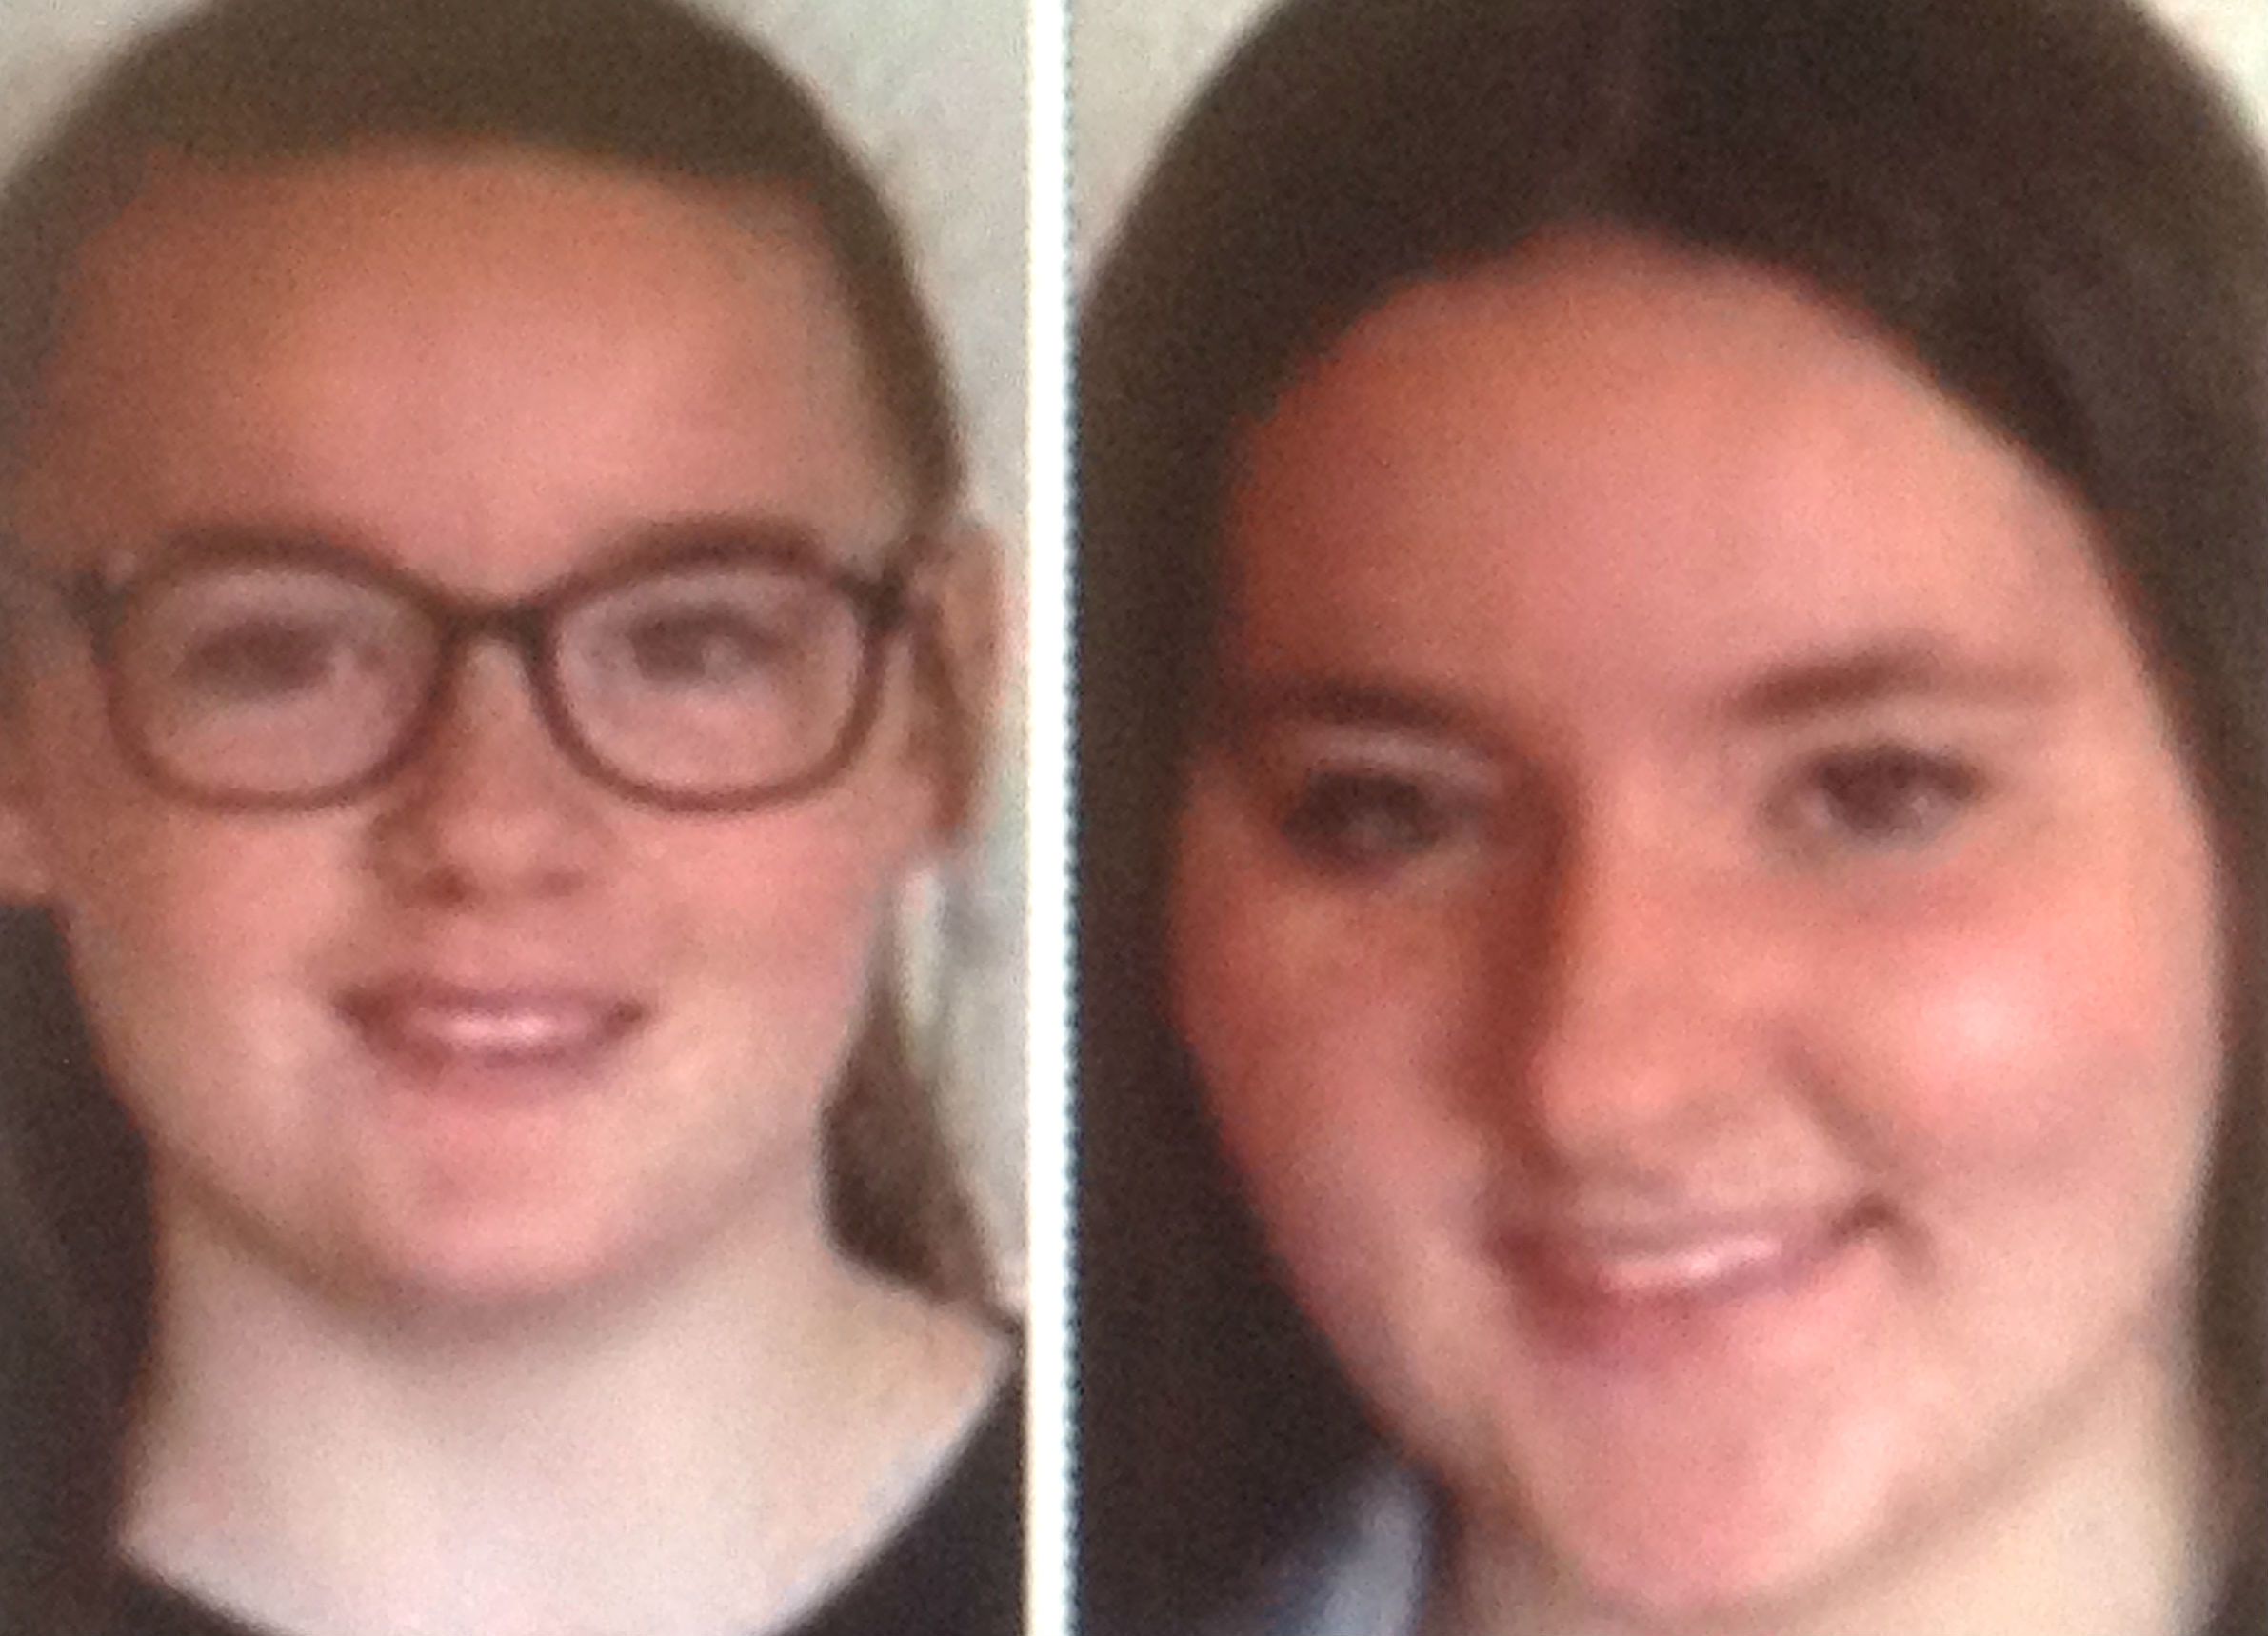 Lily and Tiagen Allinson have been missing from their home in Lancashire, since Monday February 4